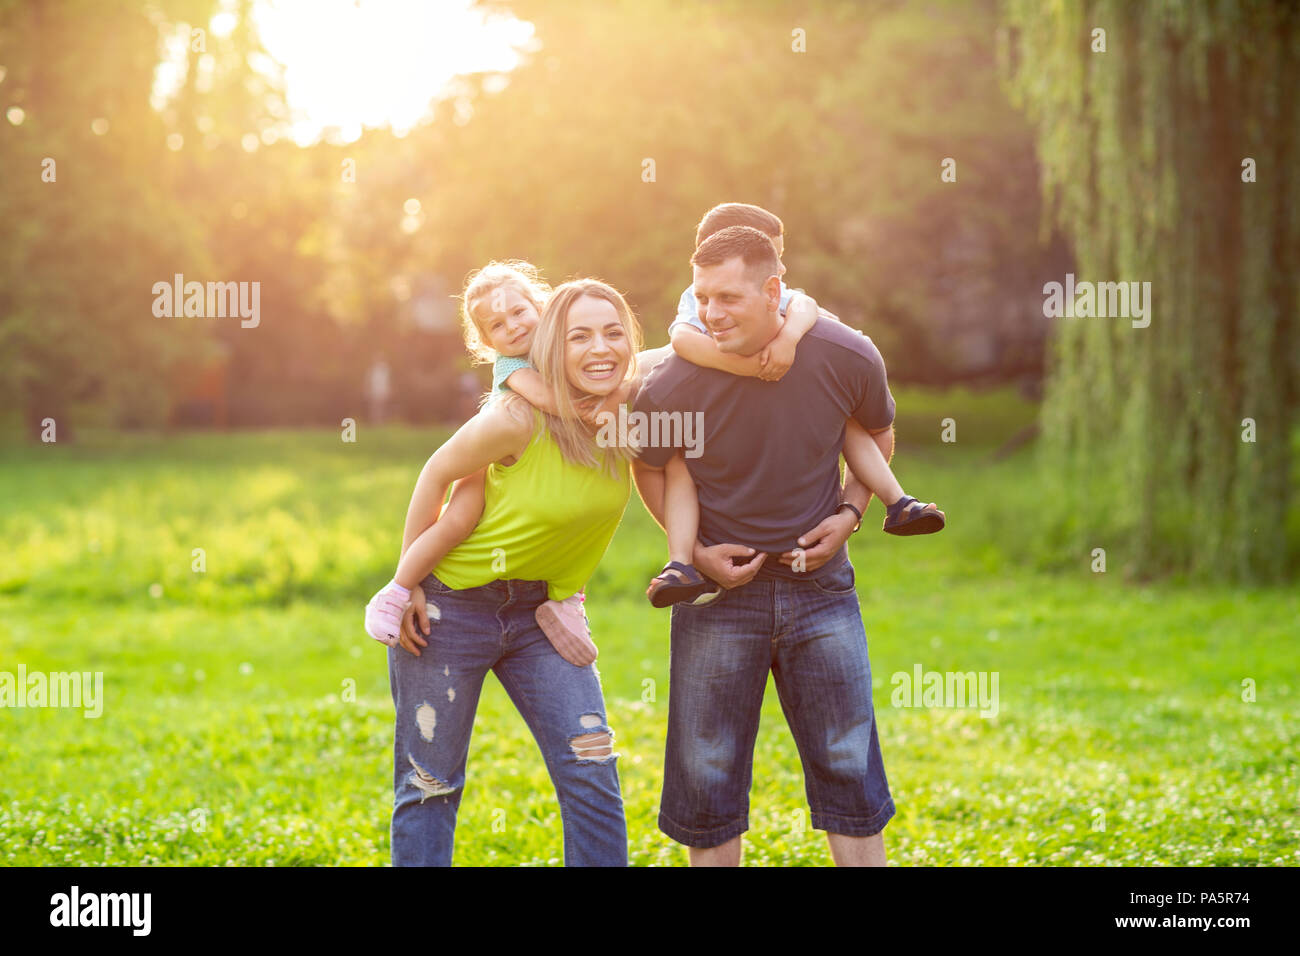 Family piggyback -Parents playing with their children in the park - Stock Image